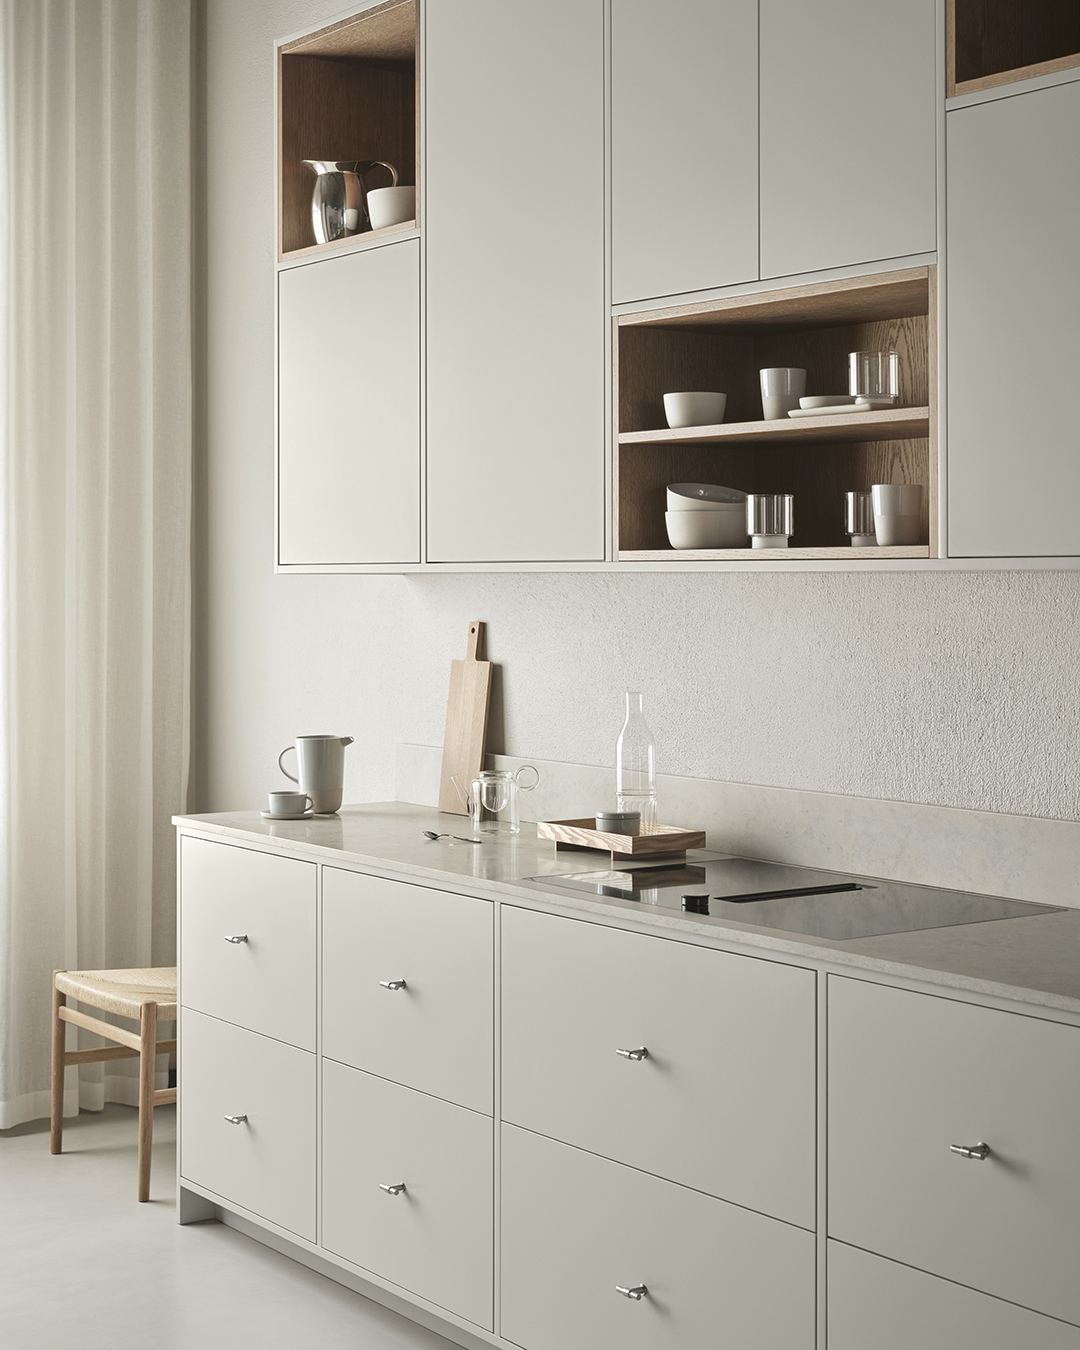 Minimalist kitchen in grey, beige and oak, with stone worktops and sections of open shelving | Eight inspiring kitchen ideas from Nordiska Kök's new showroom | These Four Walls blog